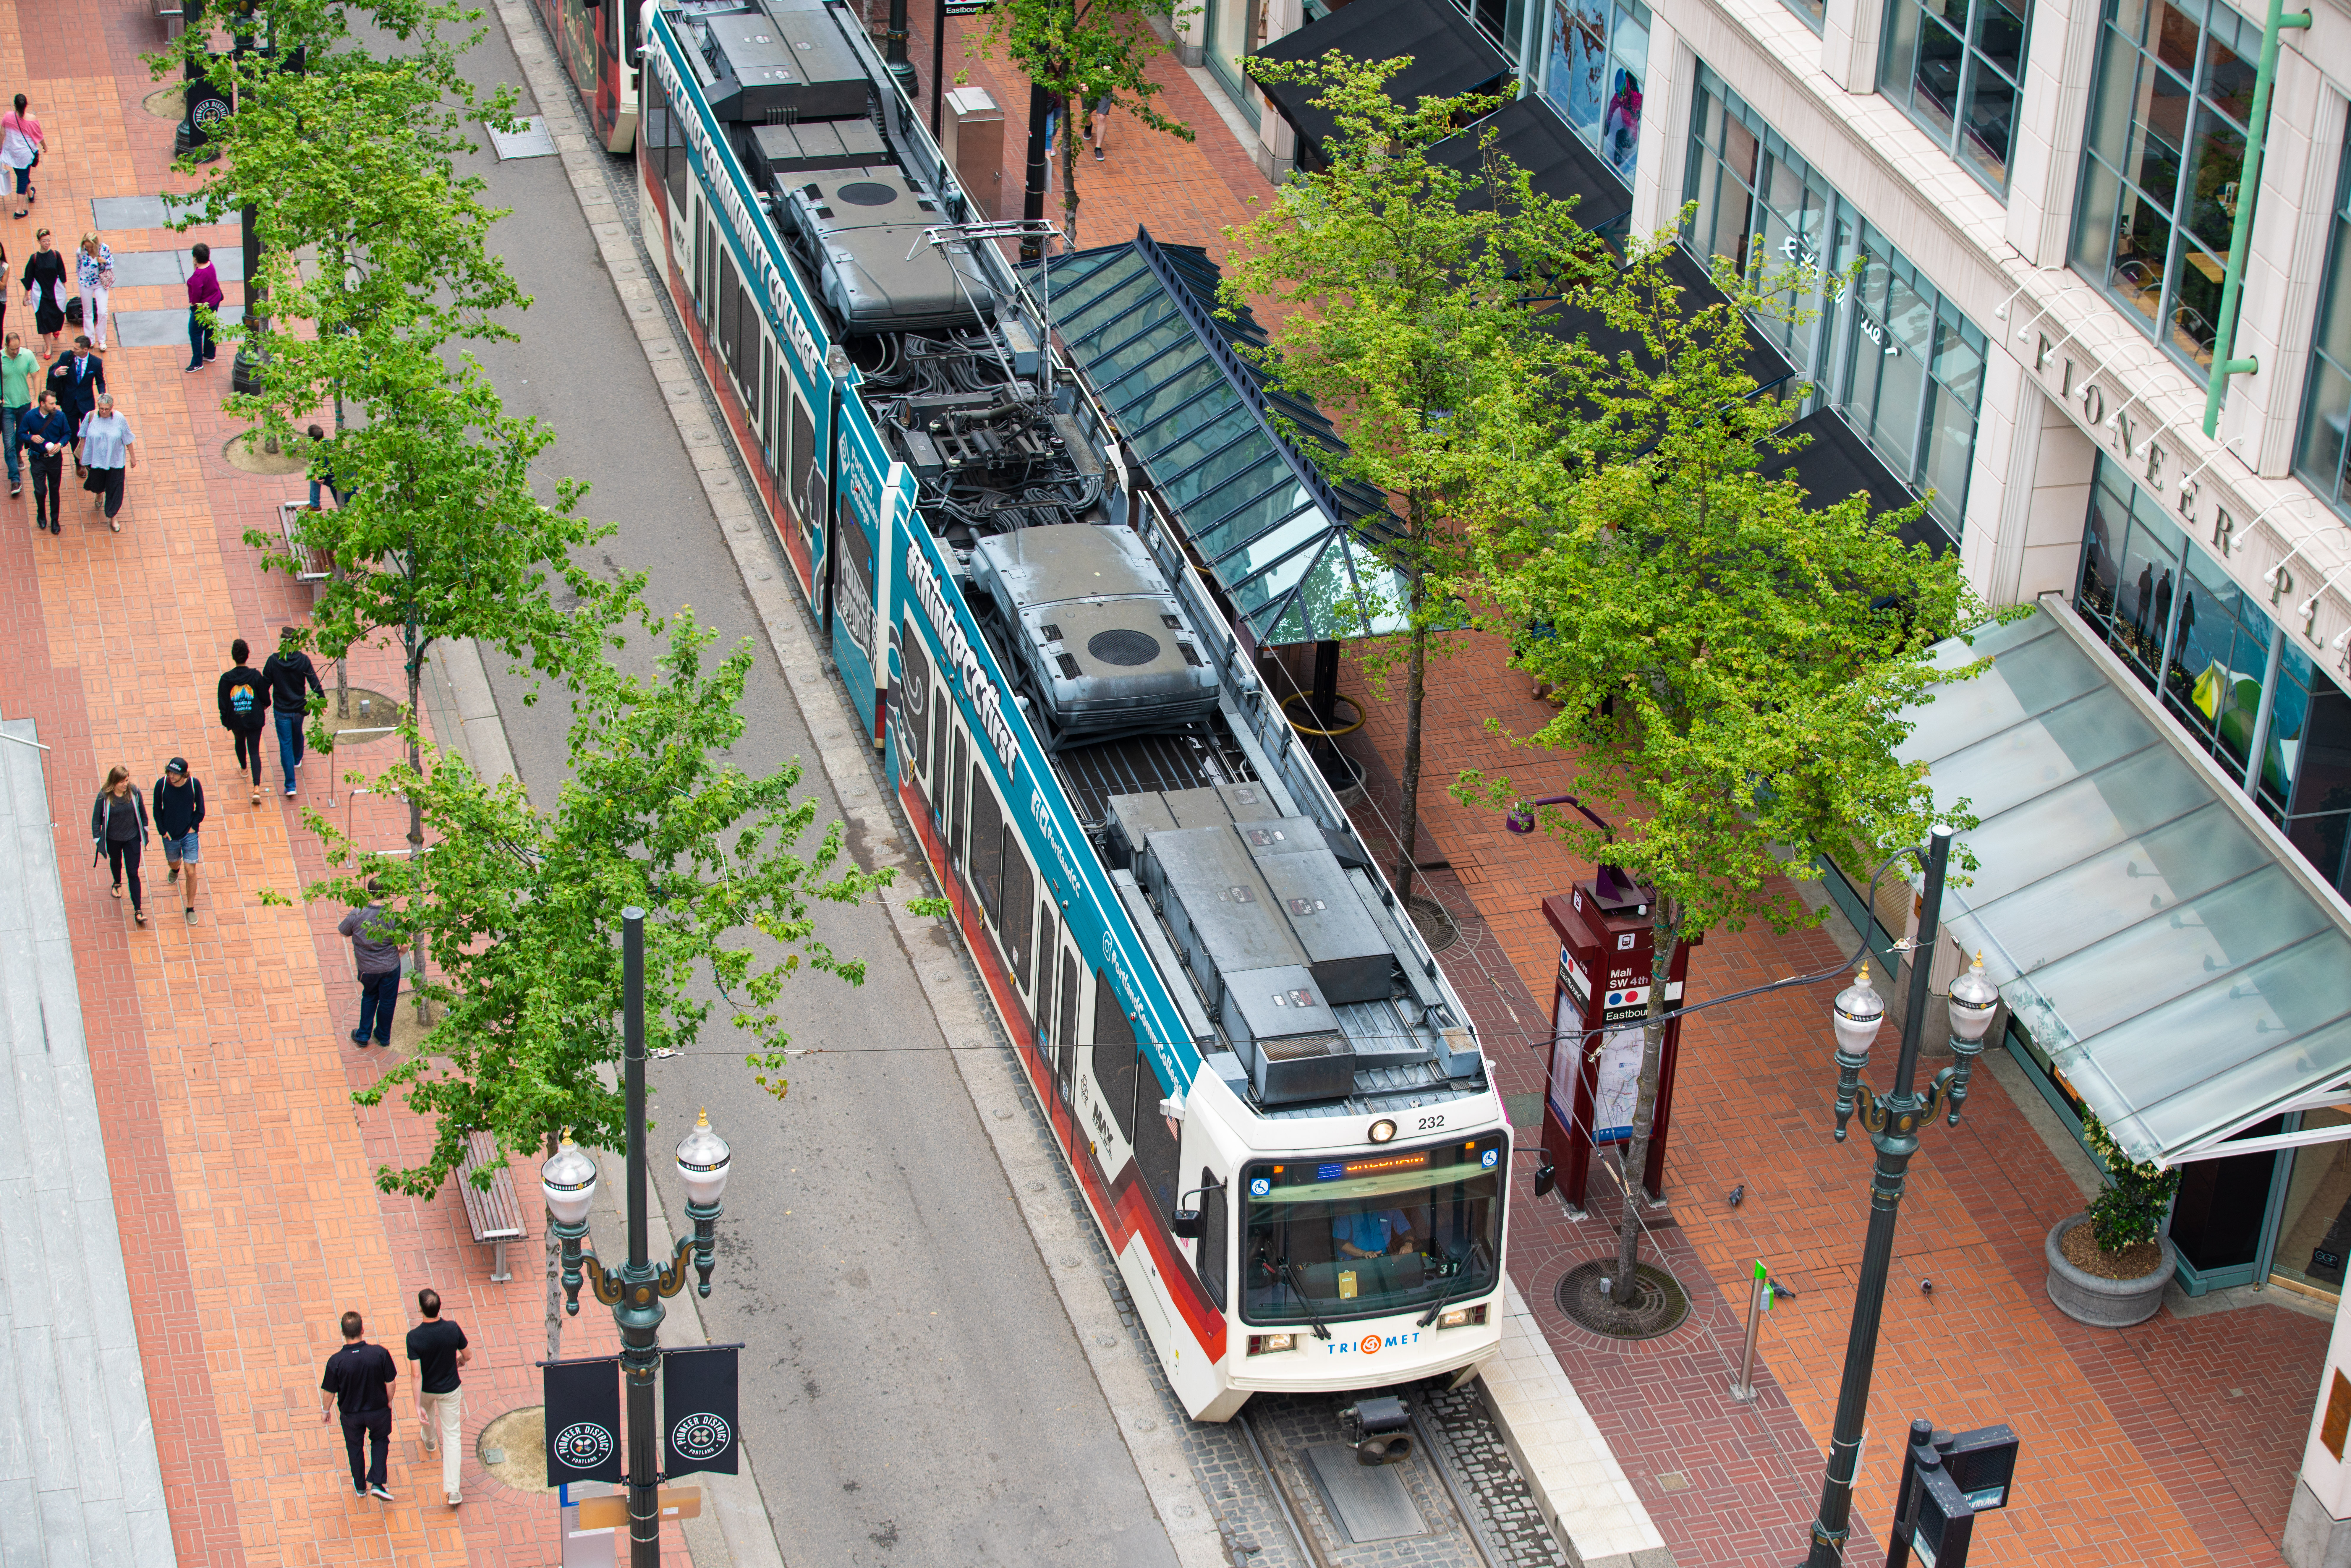 A white Trimet train arriving to the station in downtown Portland, with people walking on a wide sidewalk to the left.